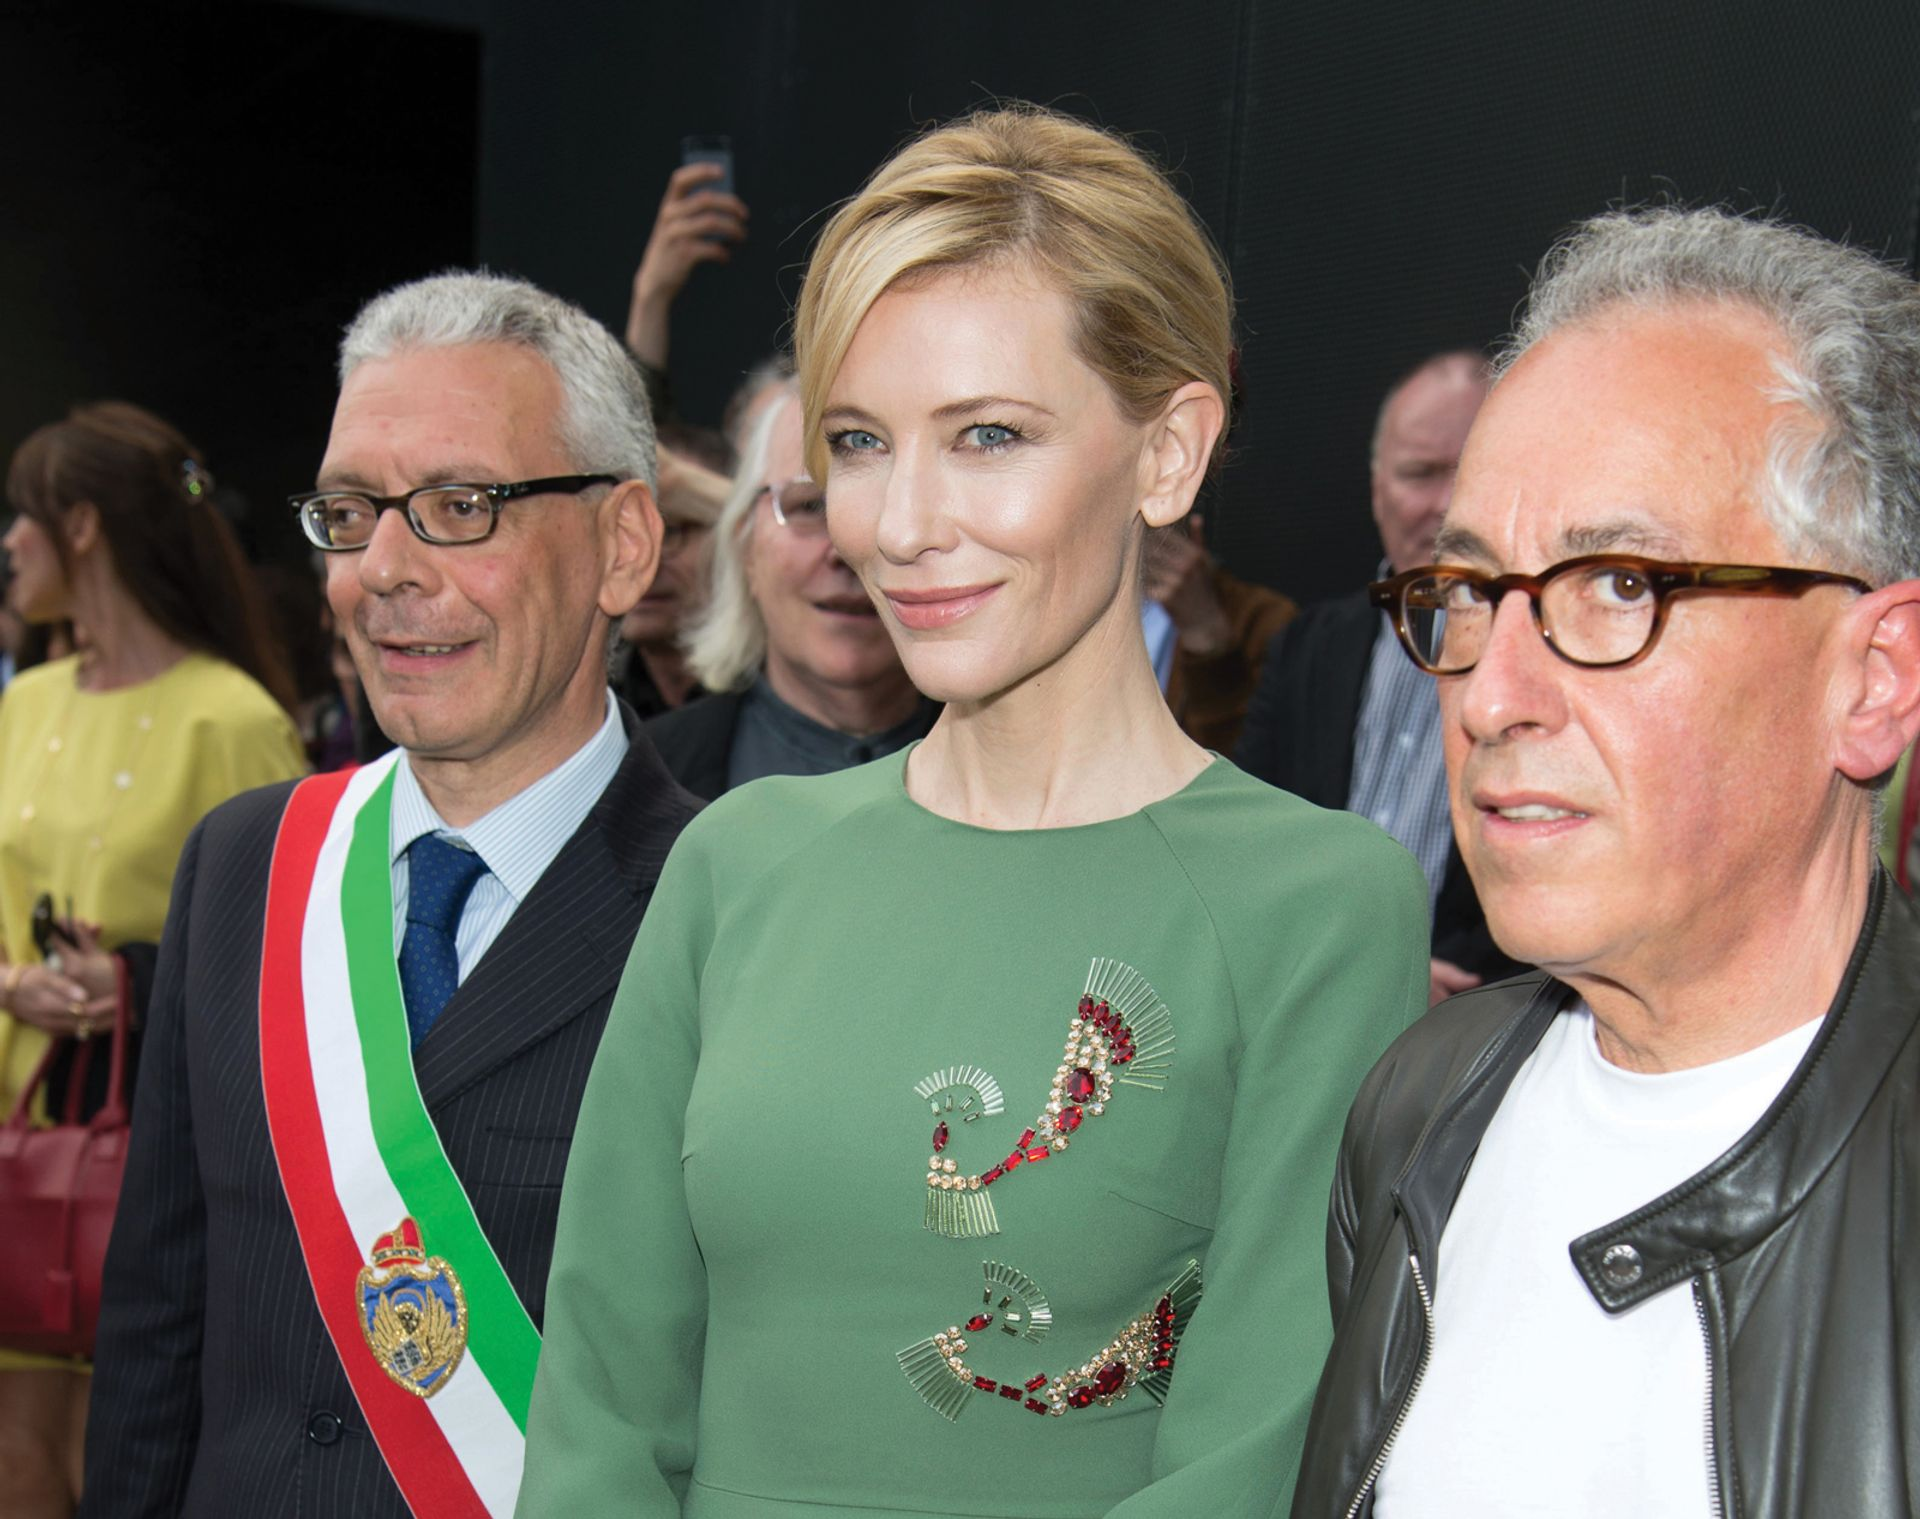 The actress Cate Blanchett with Simon Mordant (right) at the Venice Biennale in 2015 Venturelli/Getty Images